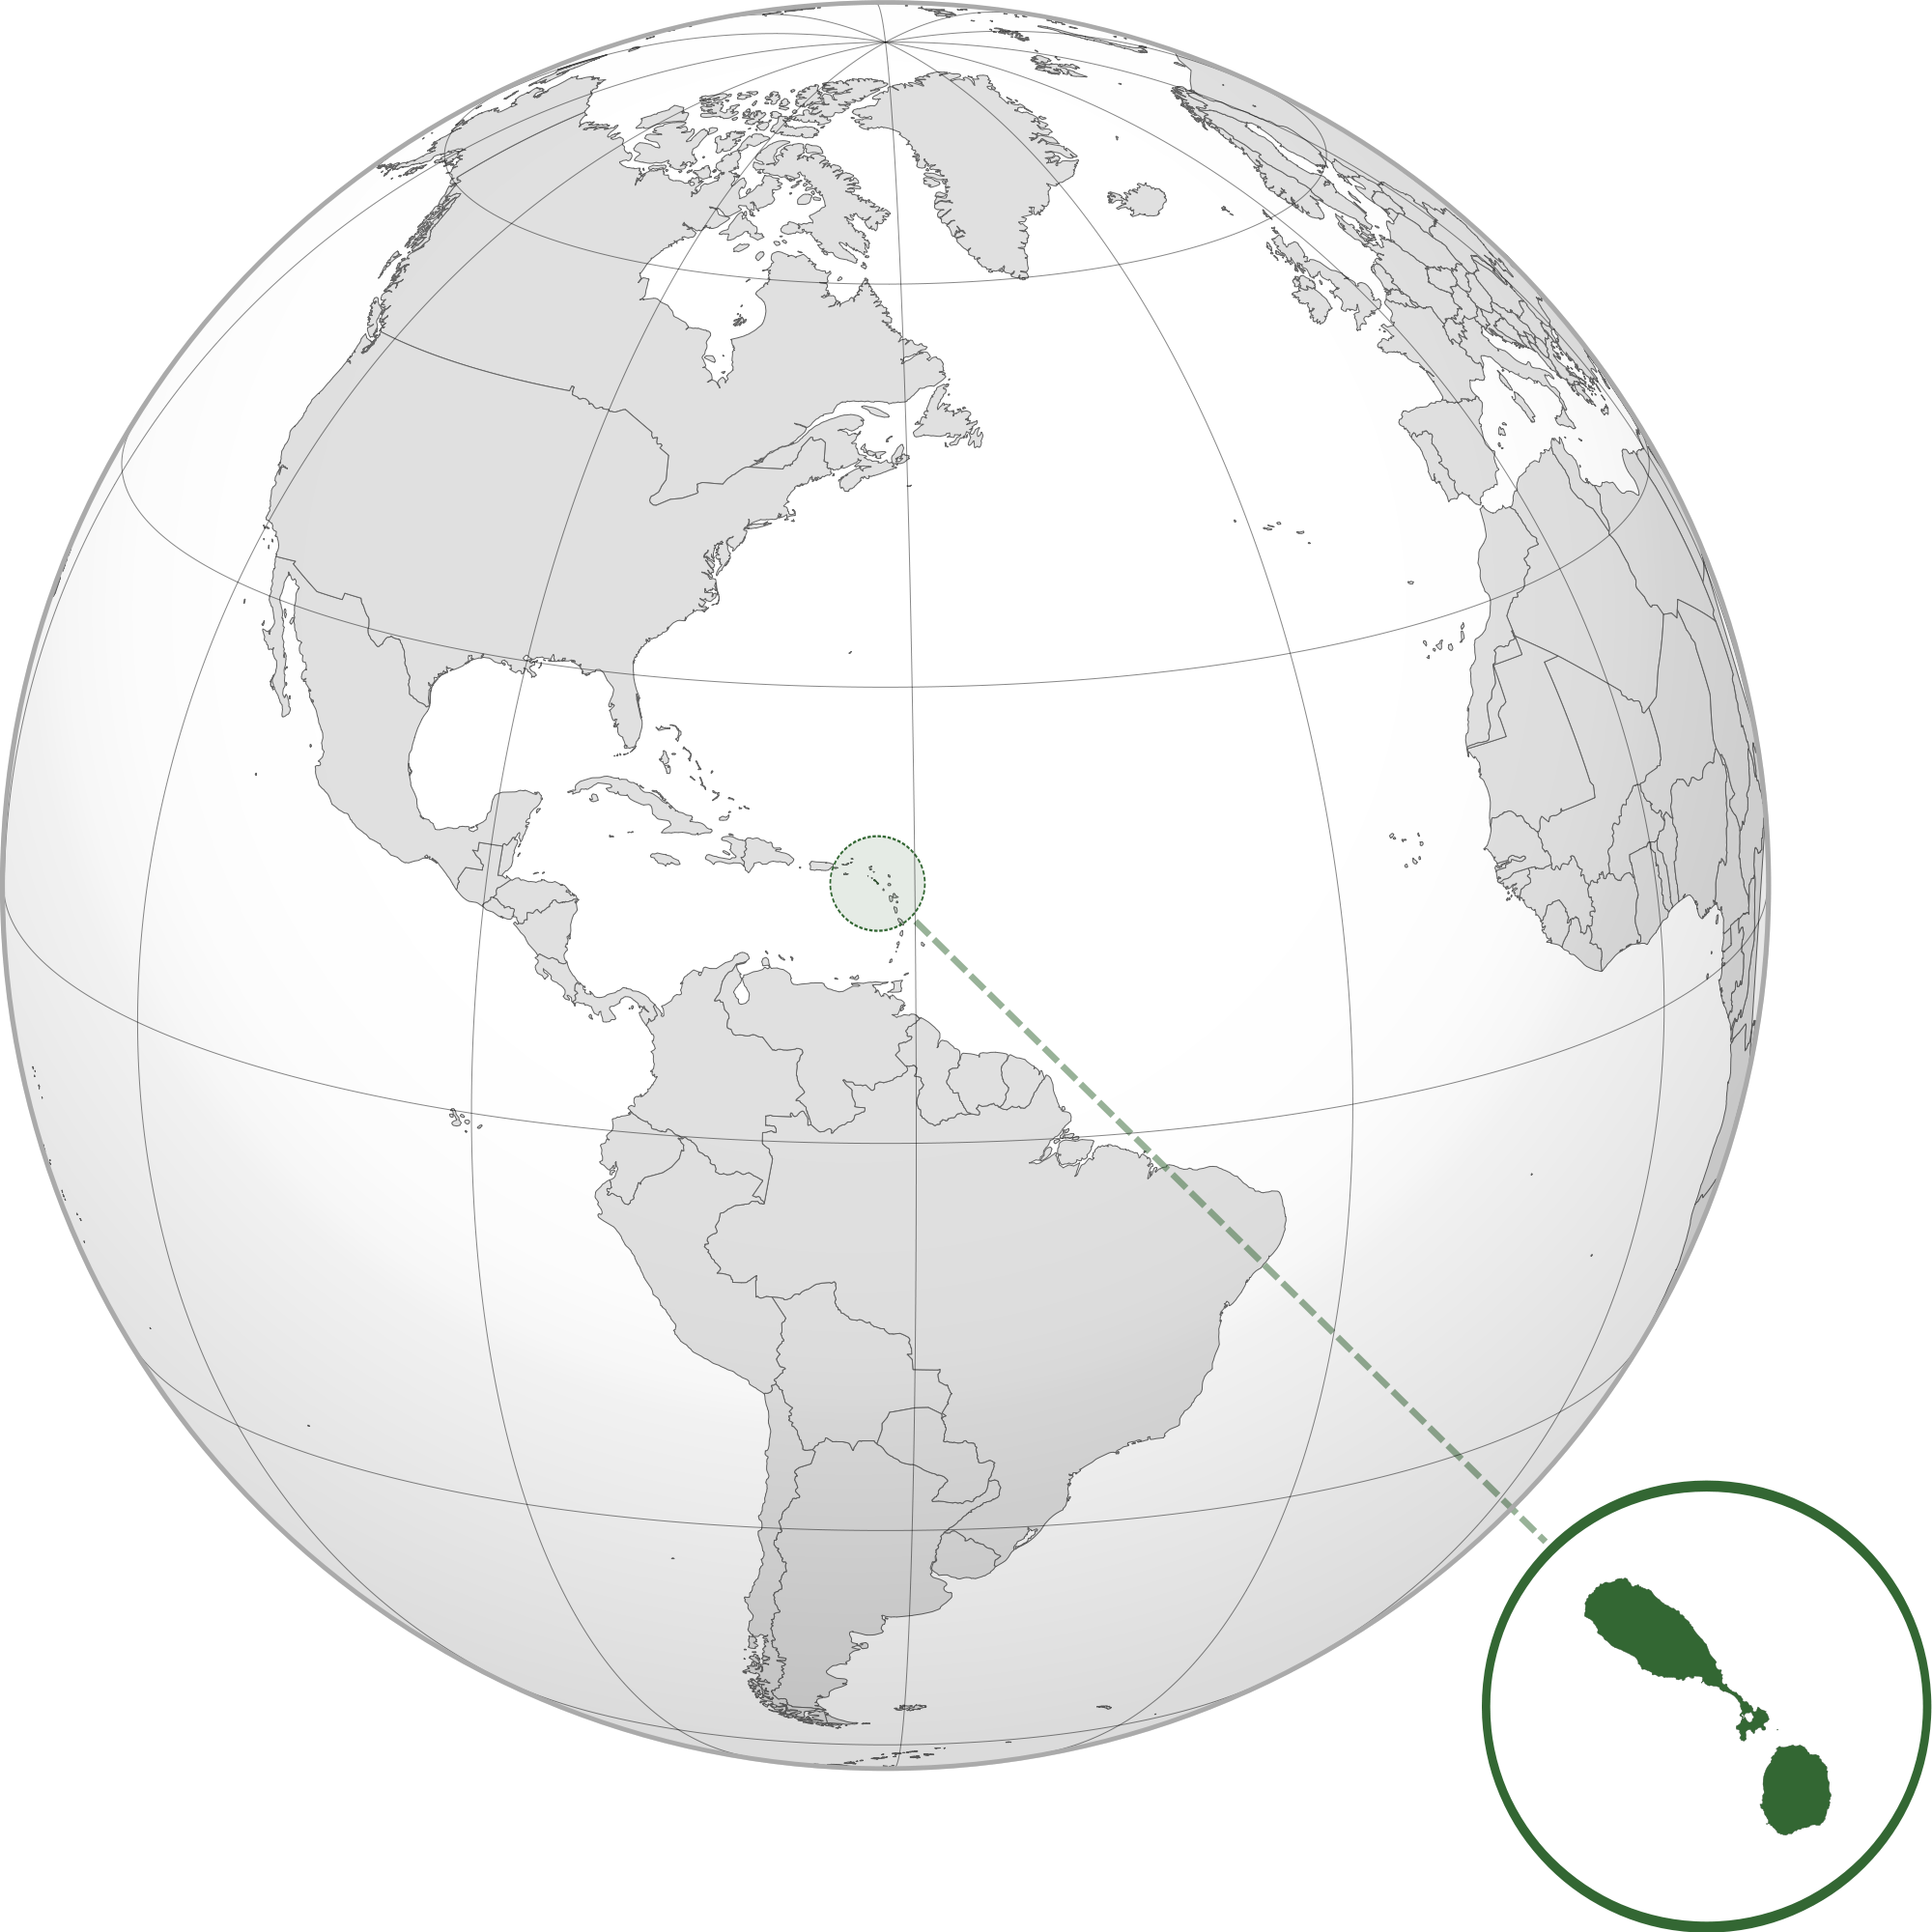 Location of the Saint Kitts and Nevis in the World Map